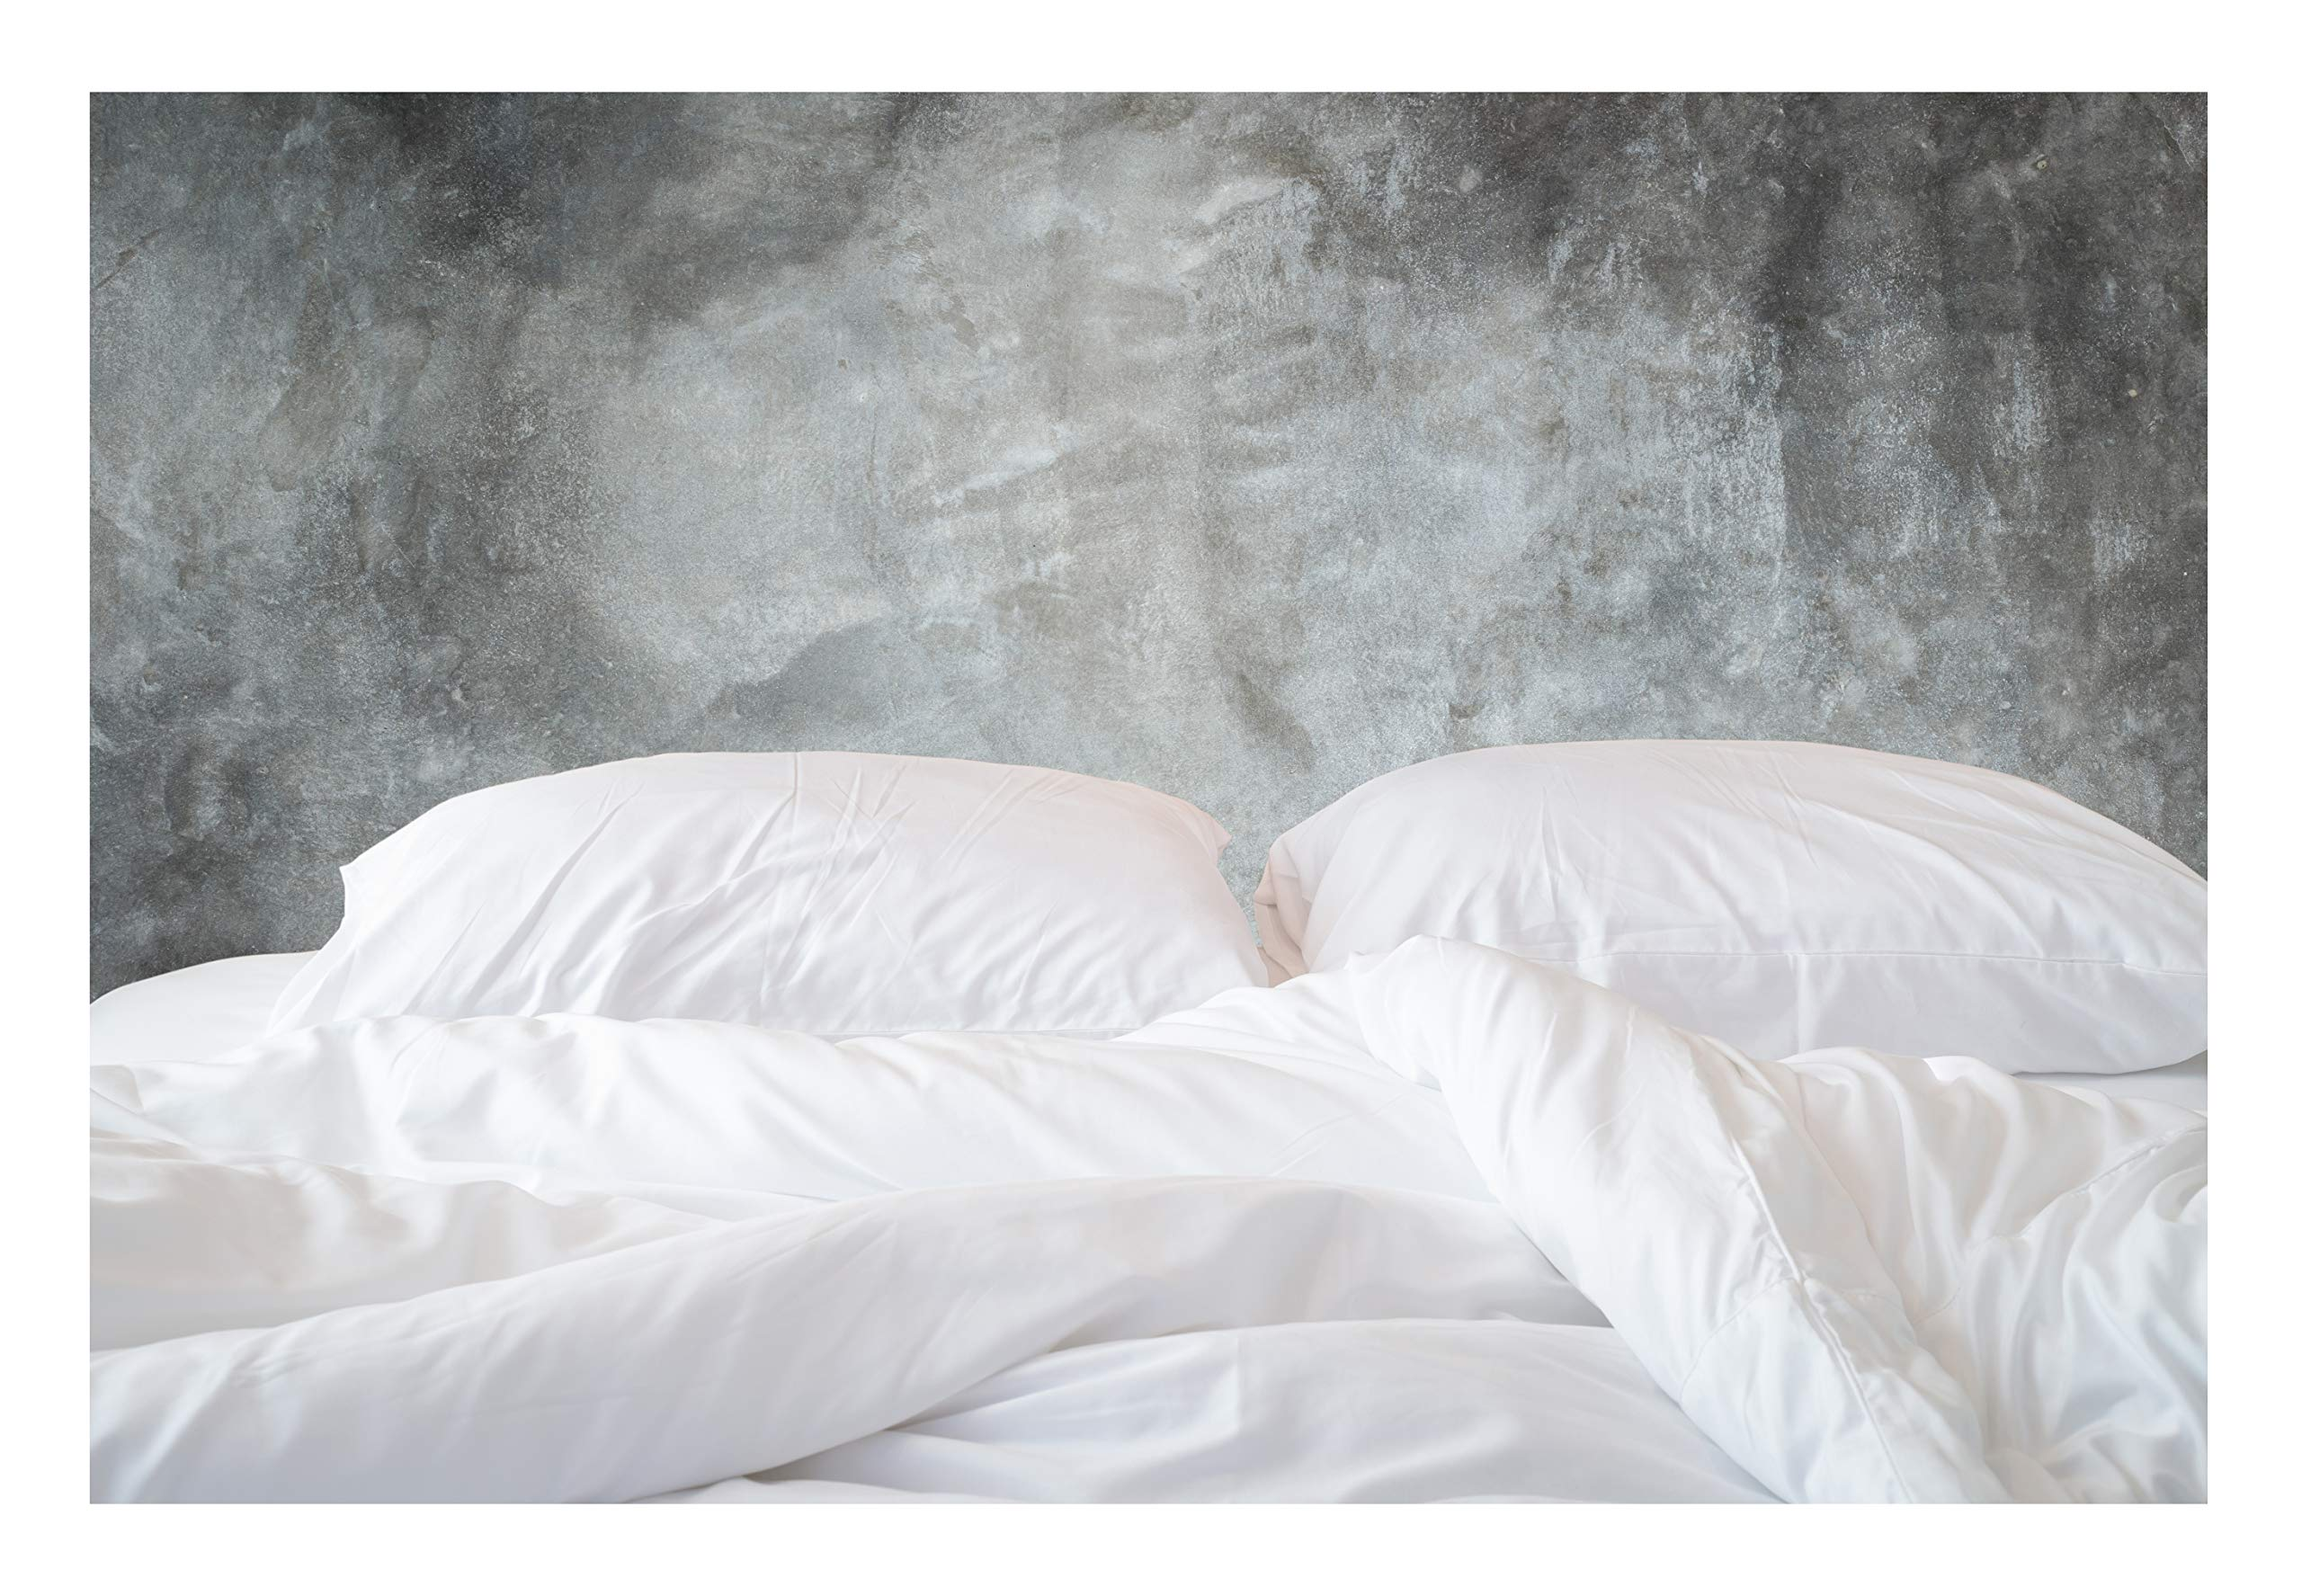 500-Thread-Count Organic Cotton Duvet Cover - 500TC King & California King Size Ultra White Color - For Bedding - 100% GOTS Certified Extra Long Staple, Soft Sateen Weave Finish - Luxury Collection